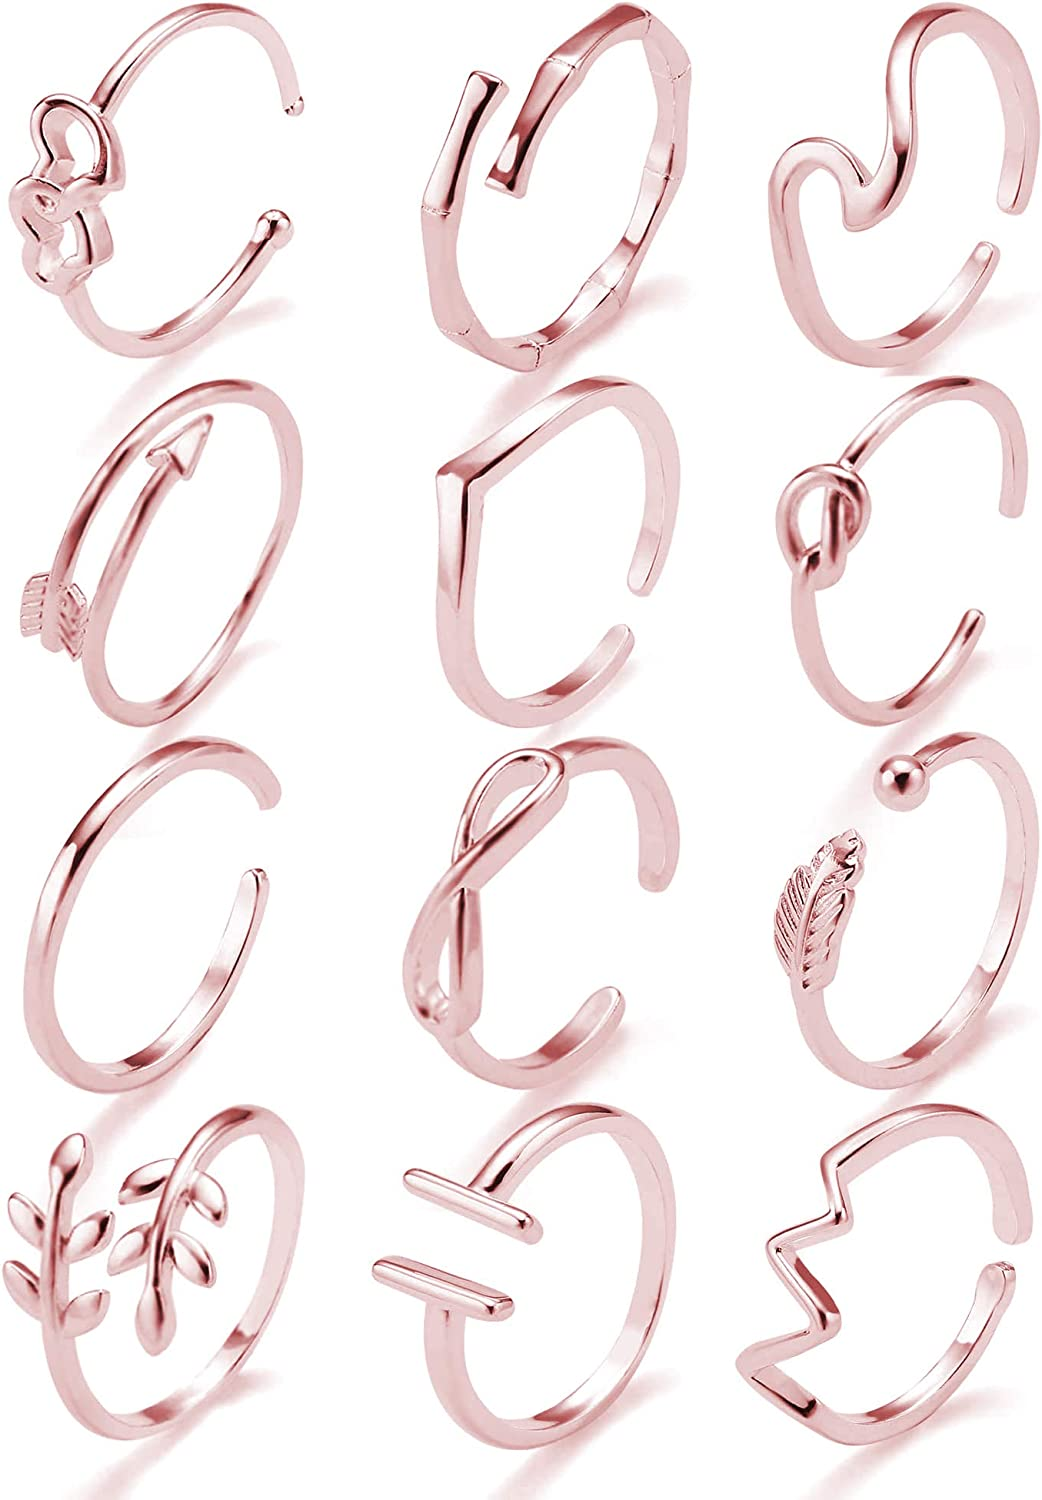 Adjustable Open Rings for Women Knot Arrow Heart Wave Infinity Rings Dainty Stackable Thumb Knuckle Open Rings Set 12 Pcs …